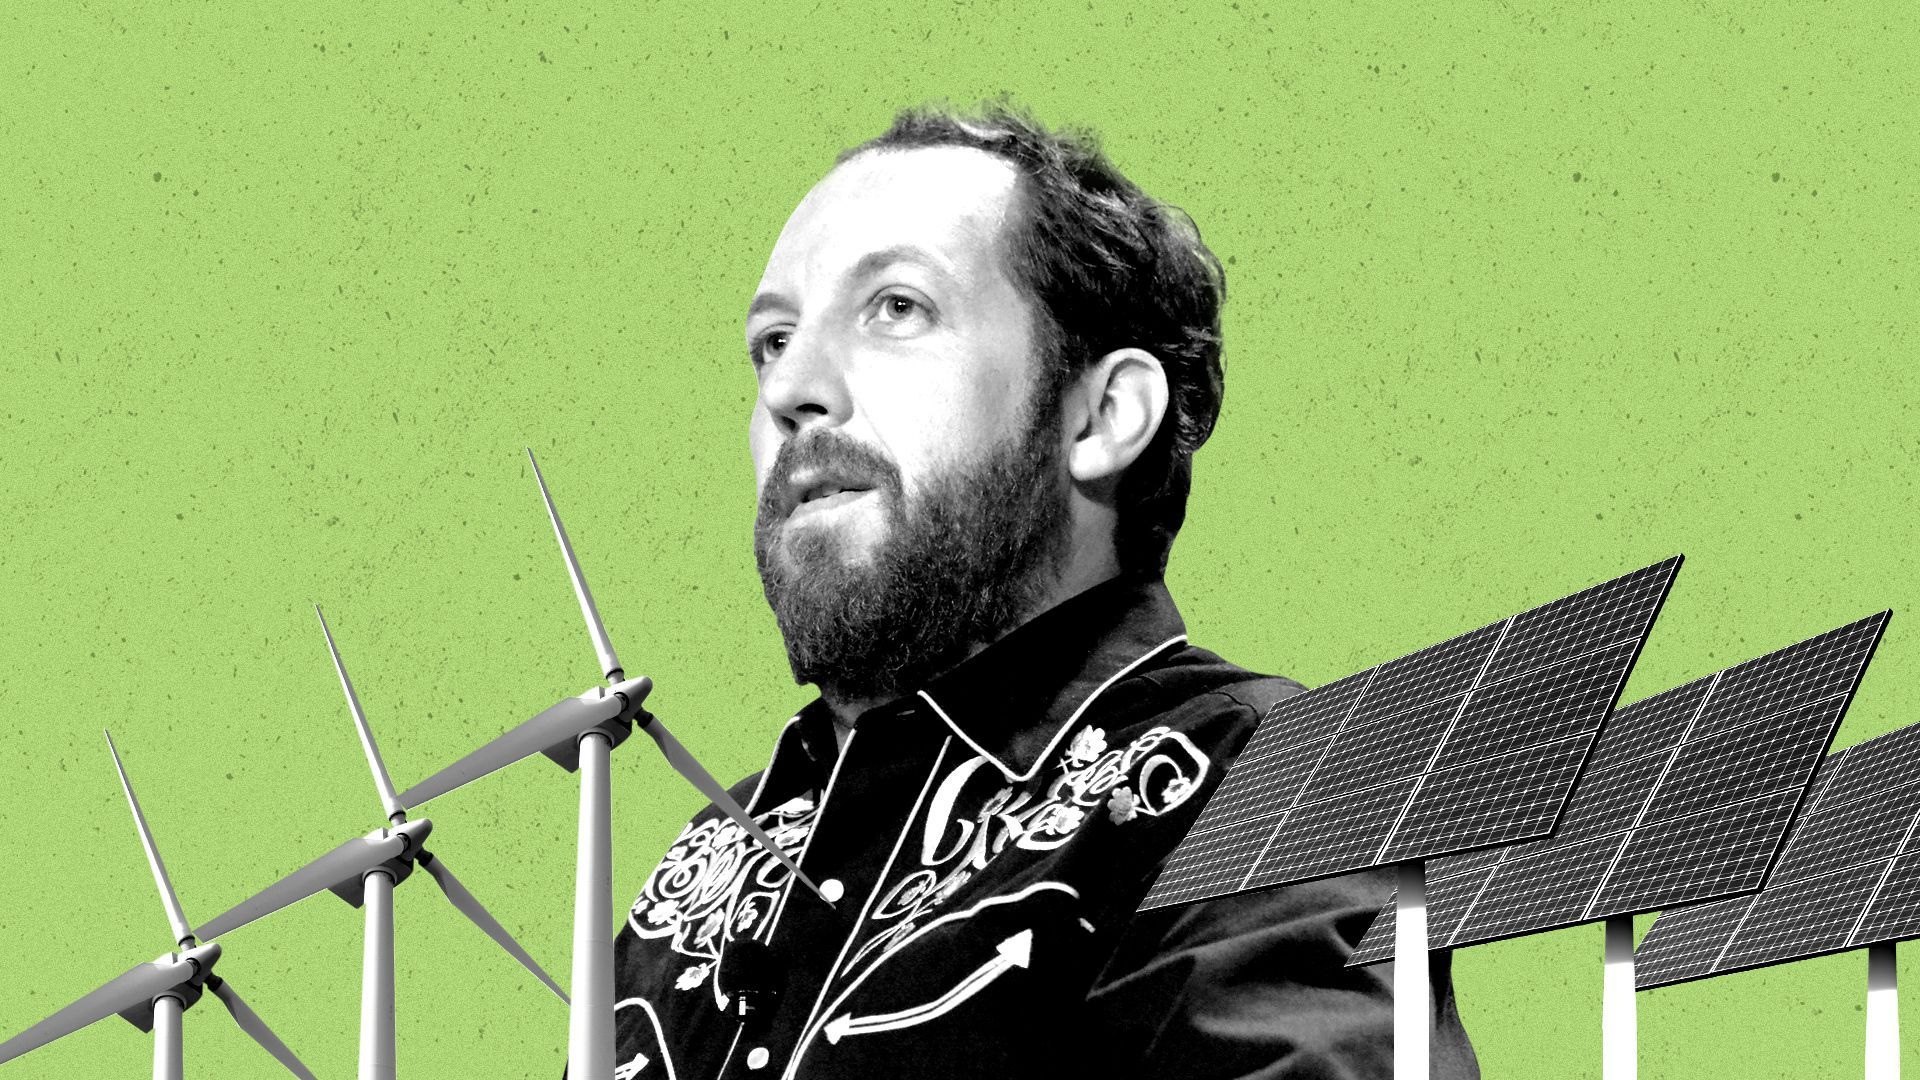 Chris Sacca returns to venture capital with clean energy firm